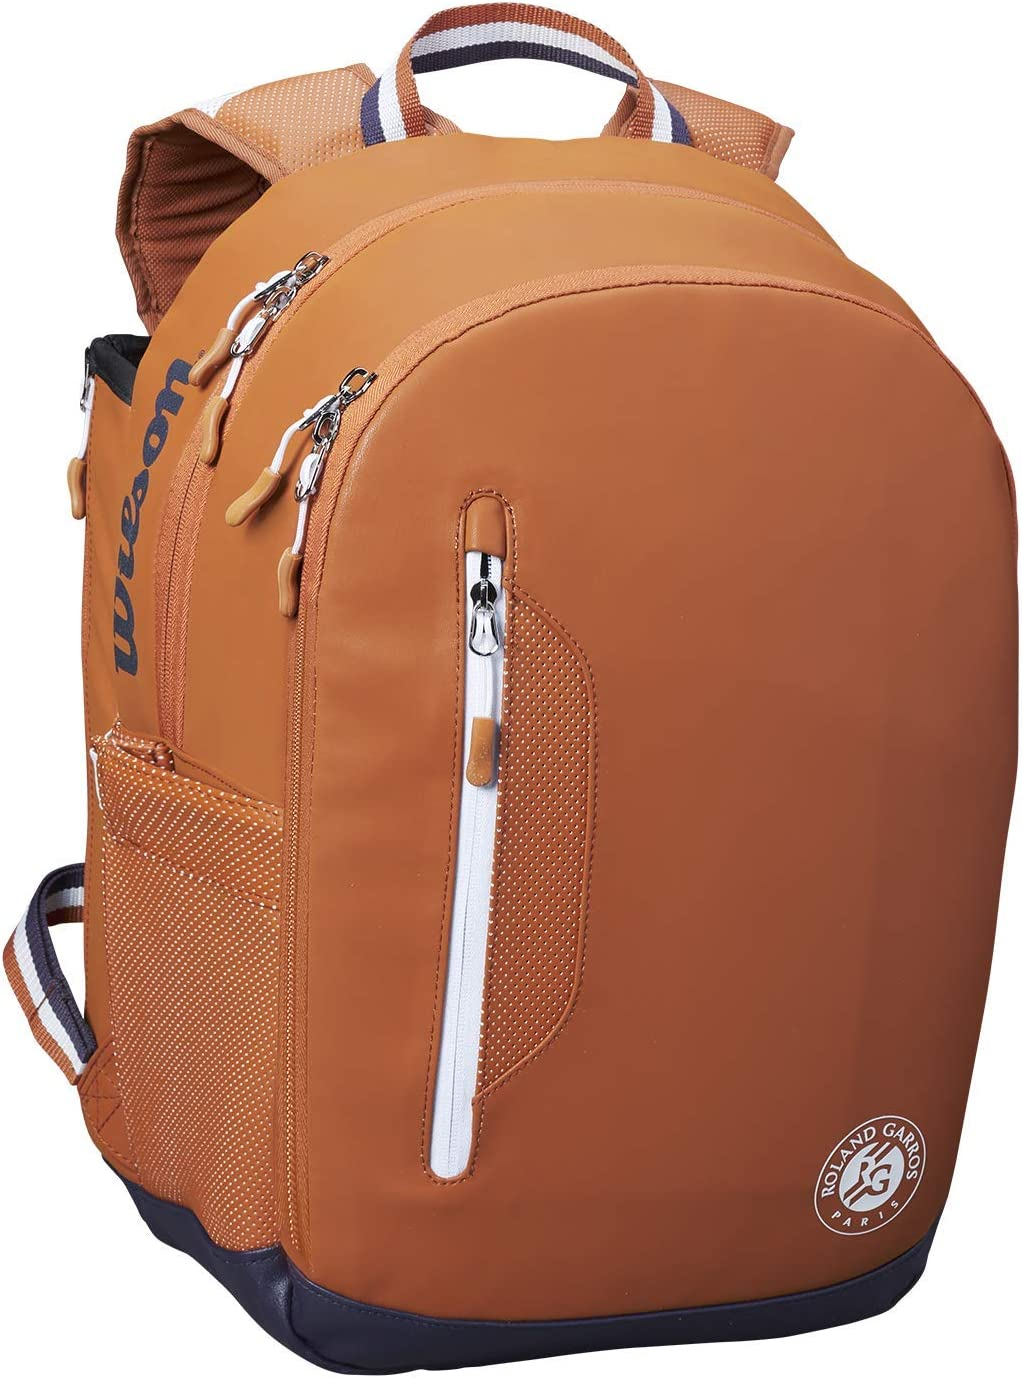 Wilson Roland Garros Tour Backpack For Up To 2 Racquets Brown Wr8006601001 Bekleidung